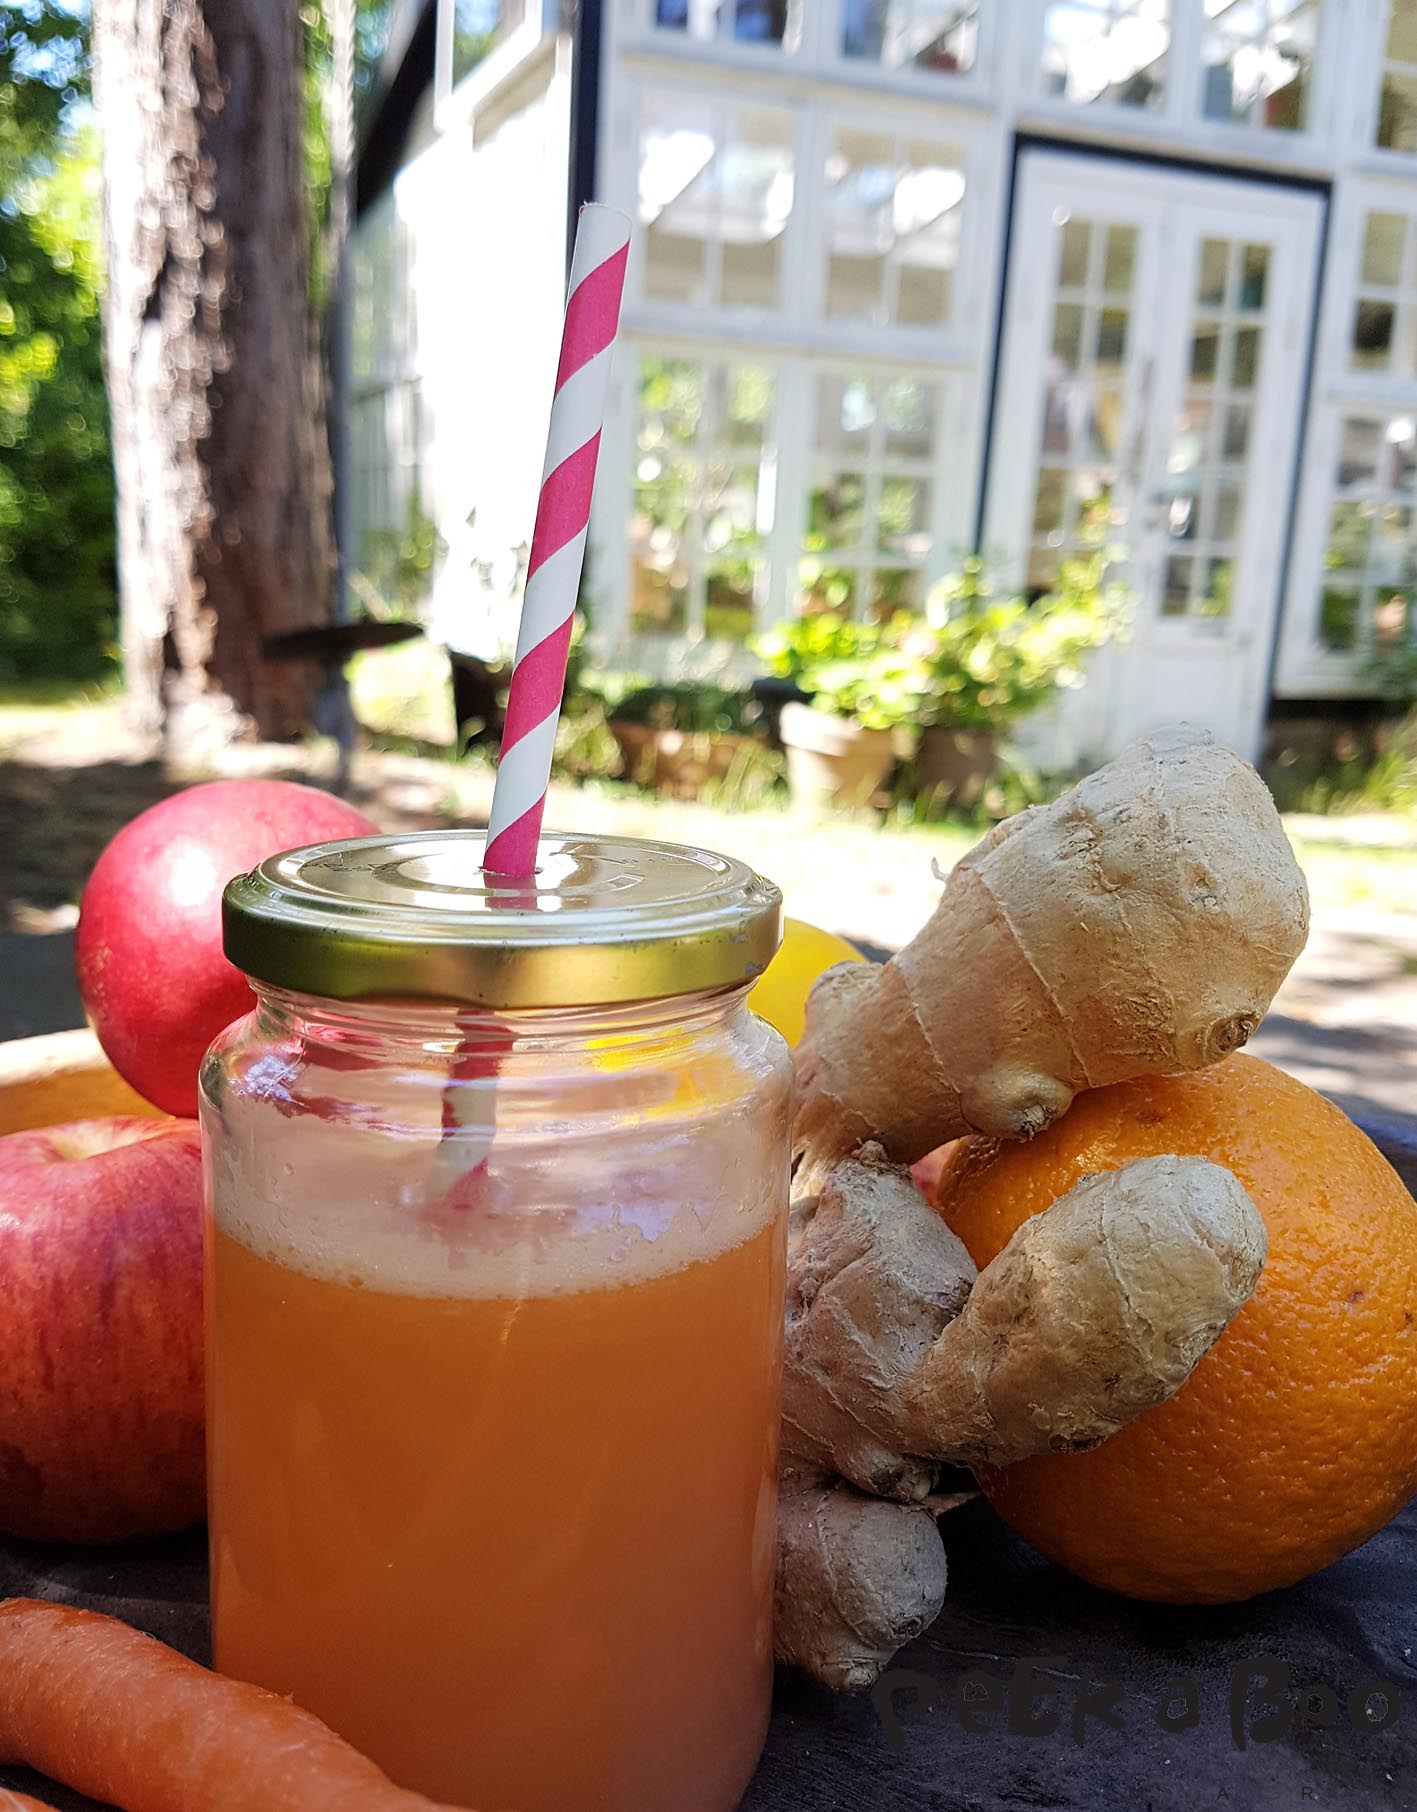 Make a nutritious juice from what you got in your fridge.